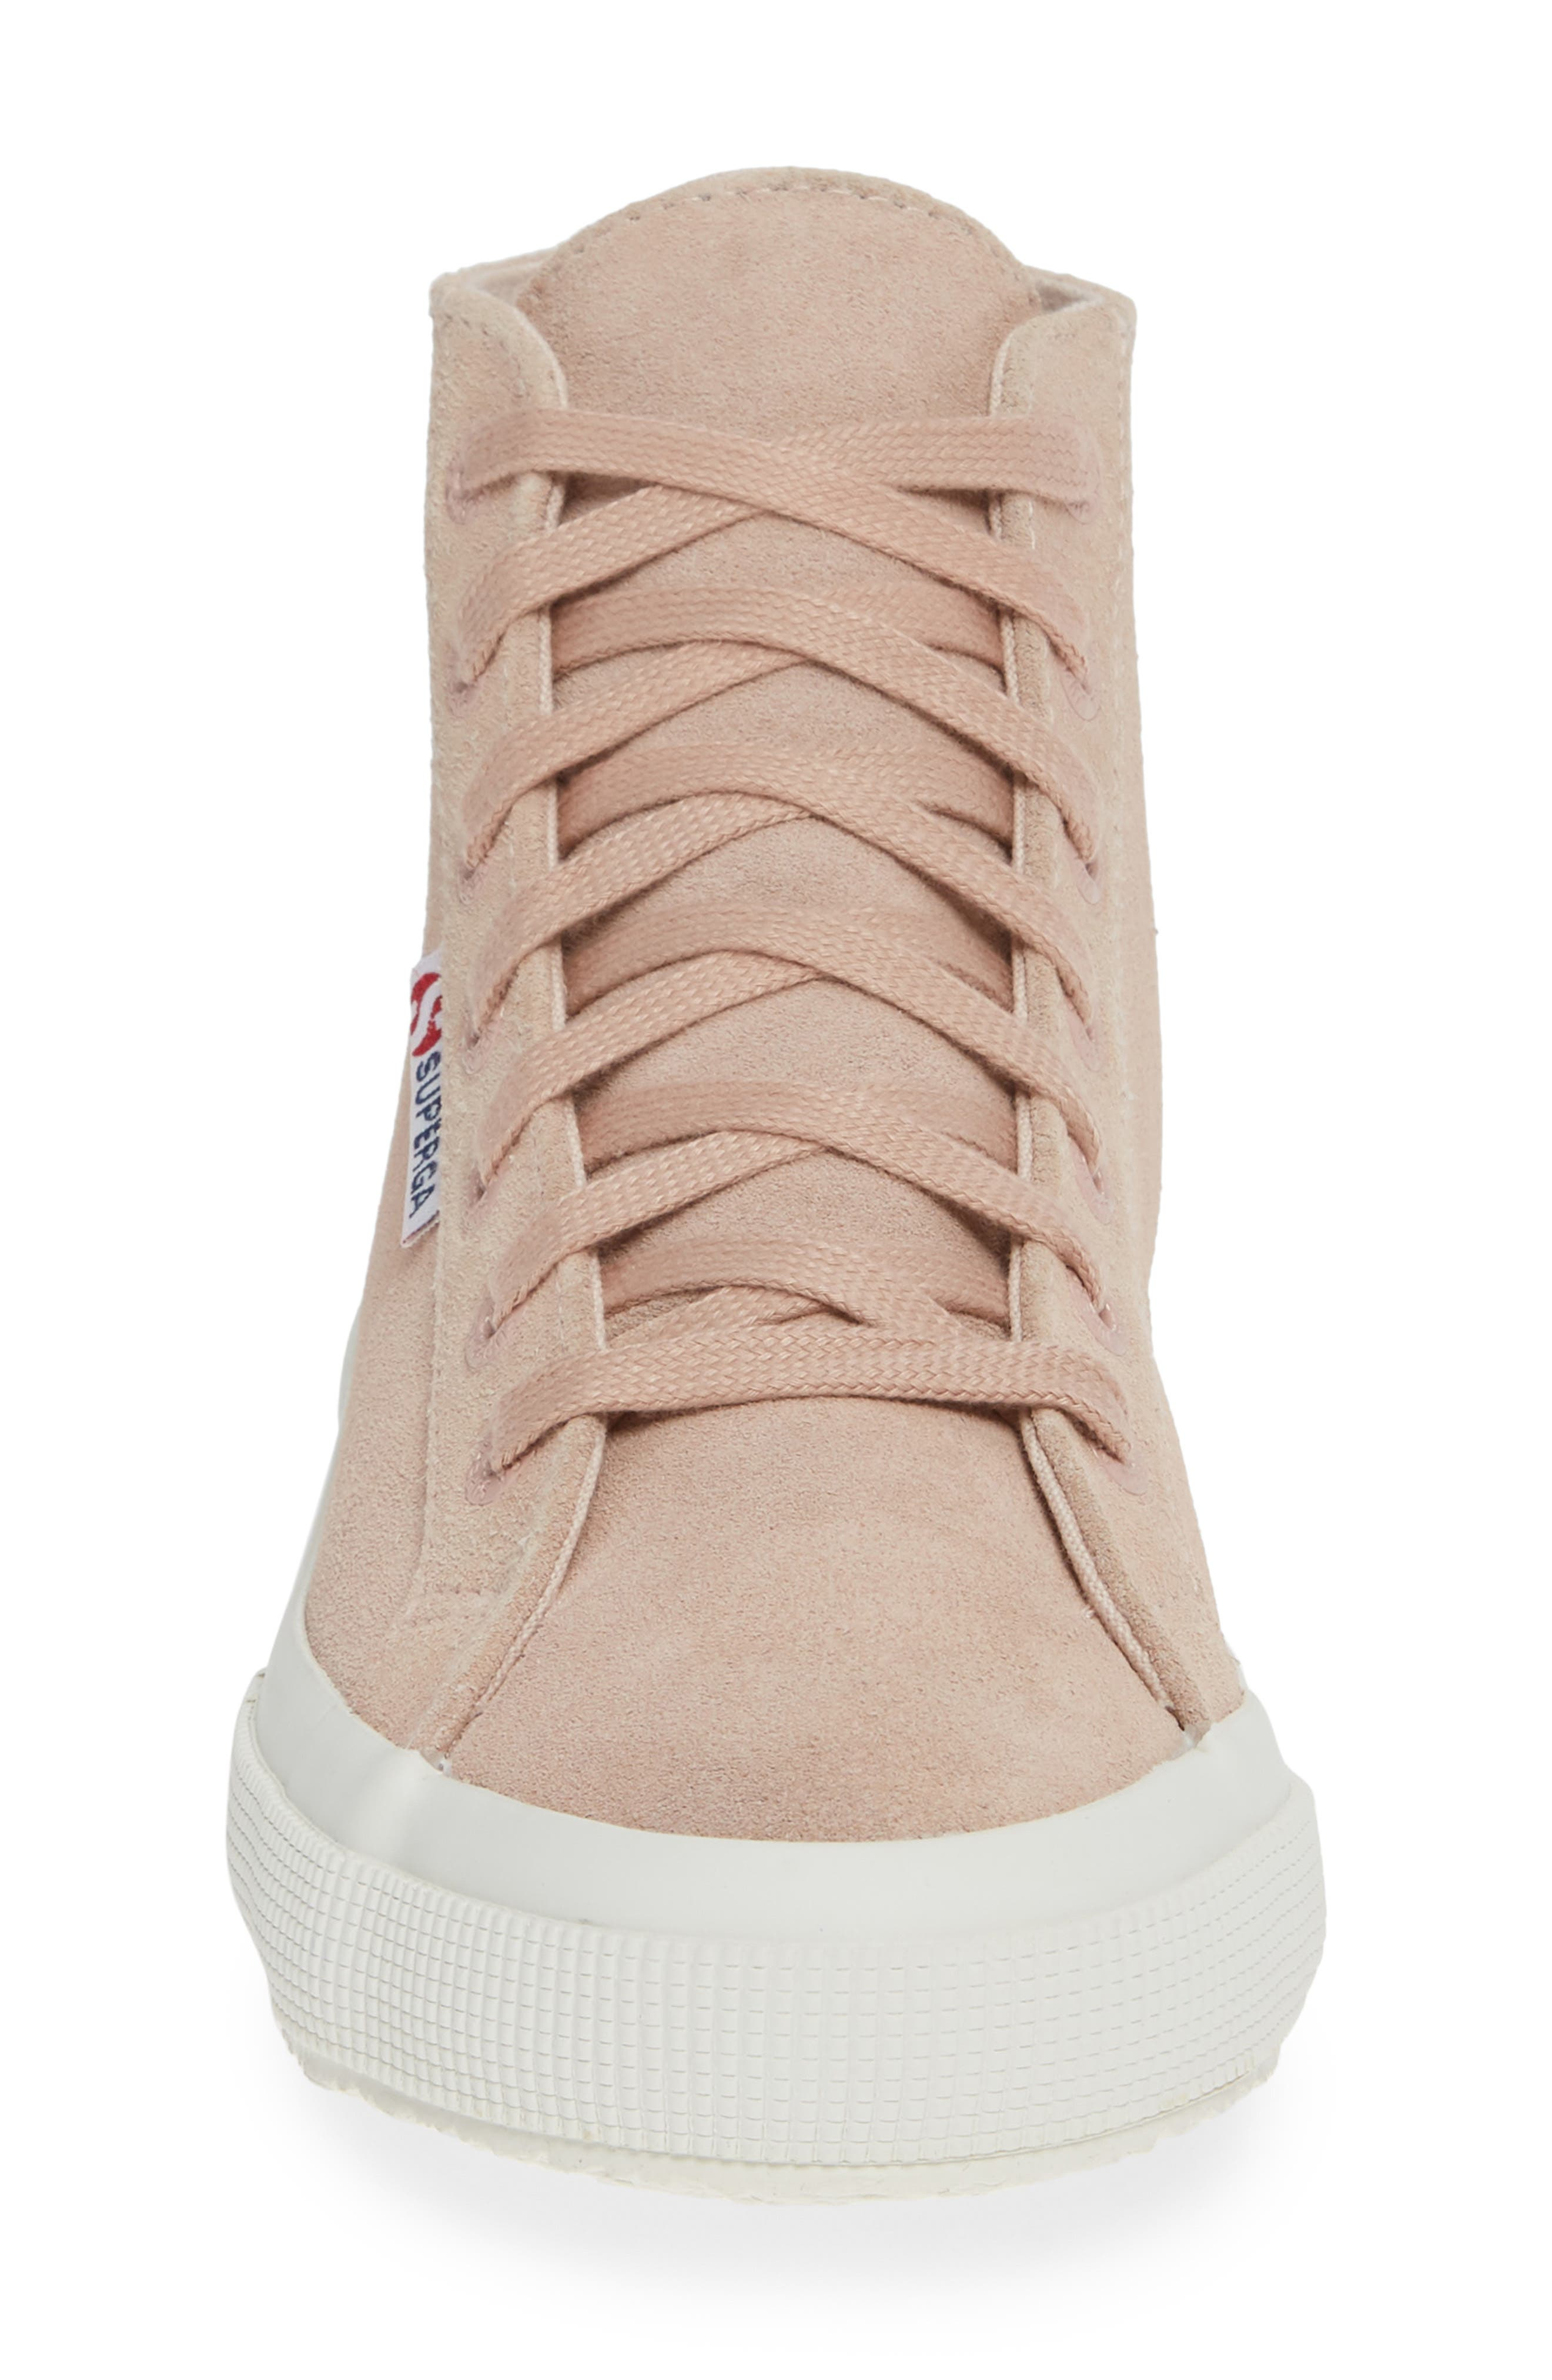 2795 High Top Sneaker,                             Alternate thumbnail 4, color,                             ROSE SUEDE